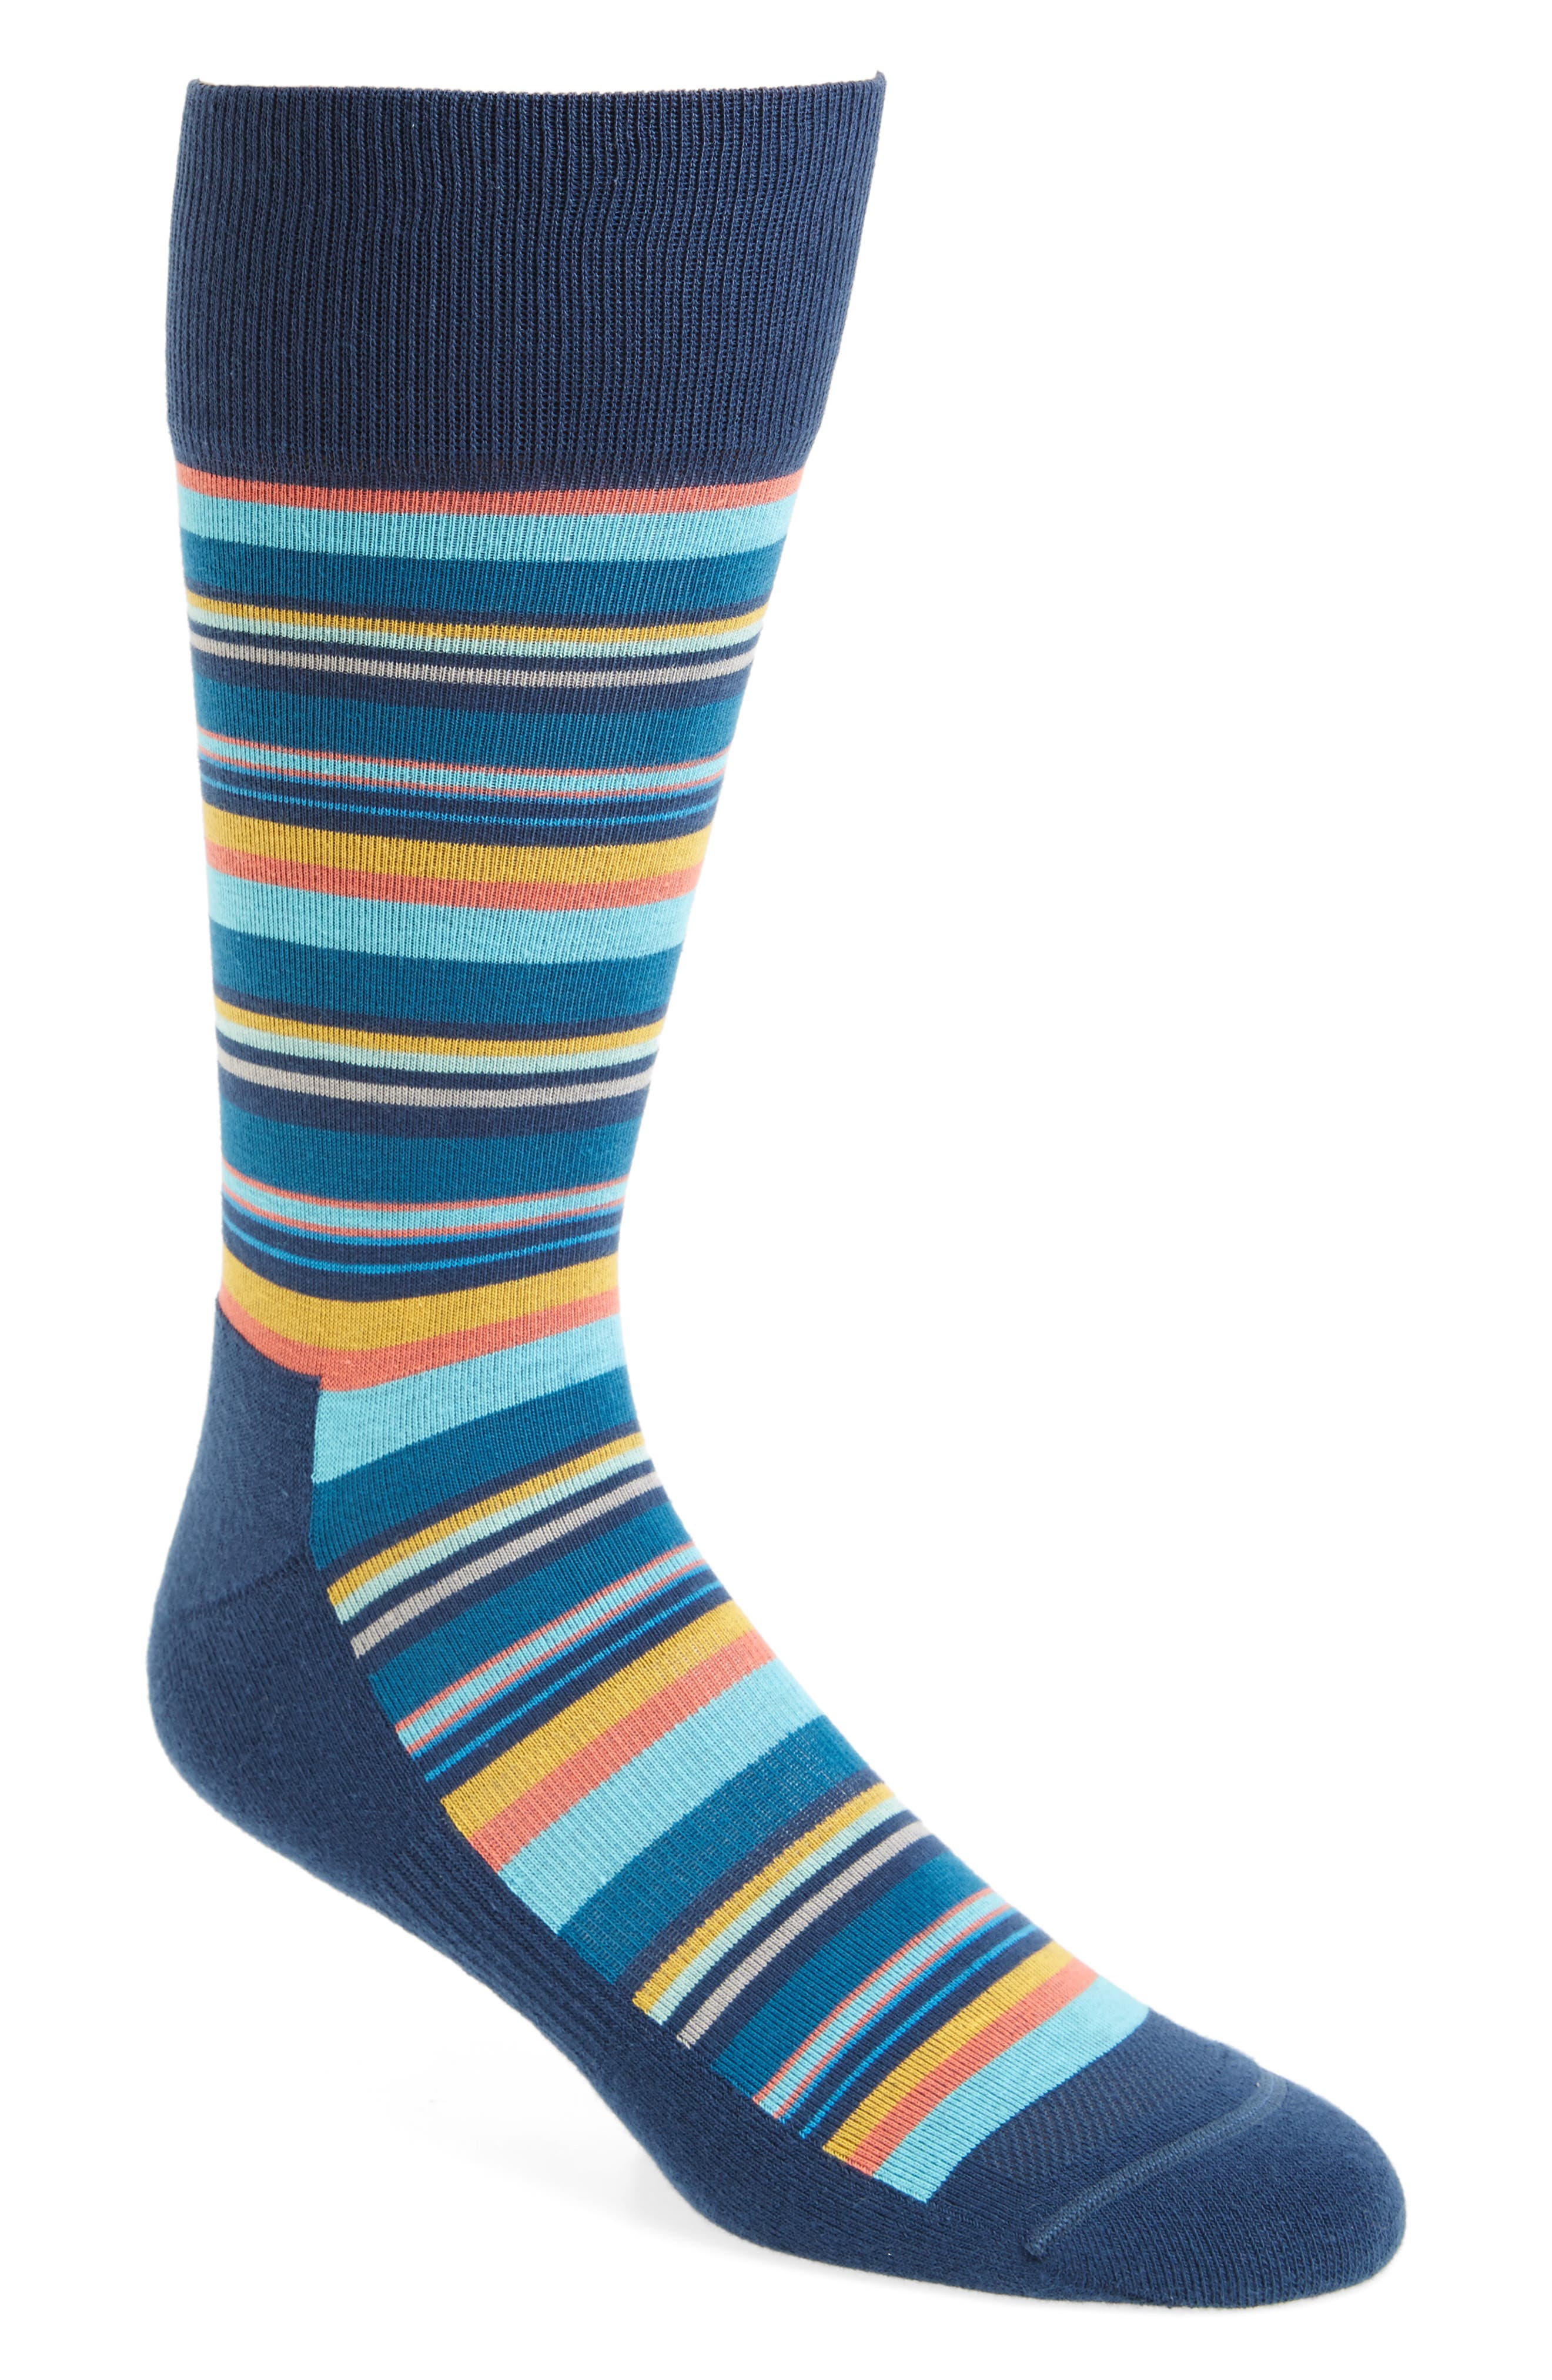 Variegated Stripe Socks,                             Main thumbnail 1, color,                             NAVY/ ORANGE